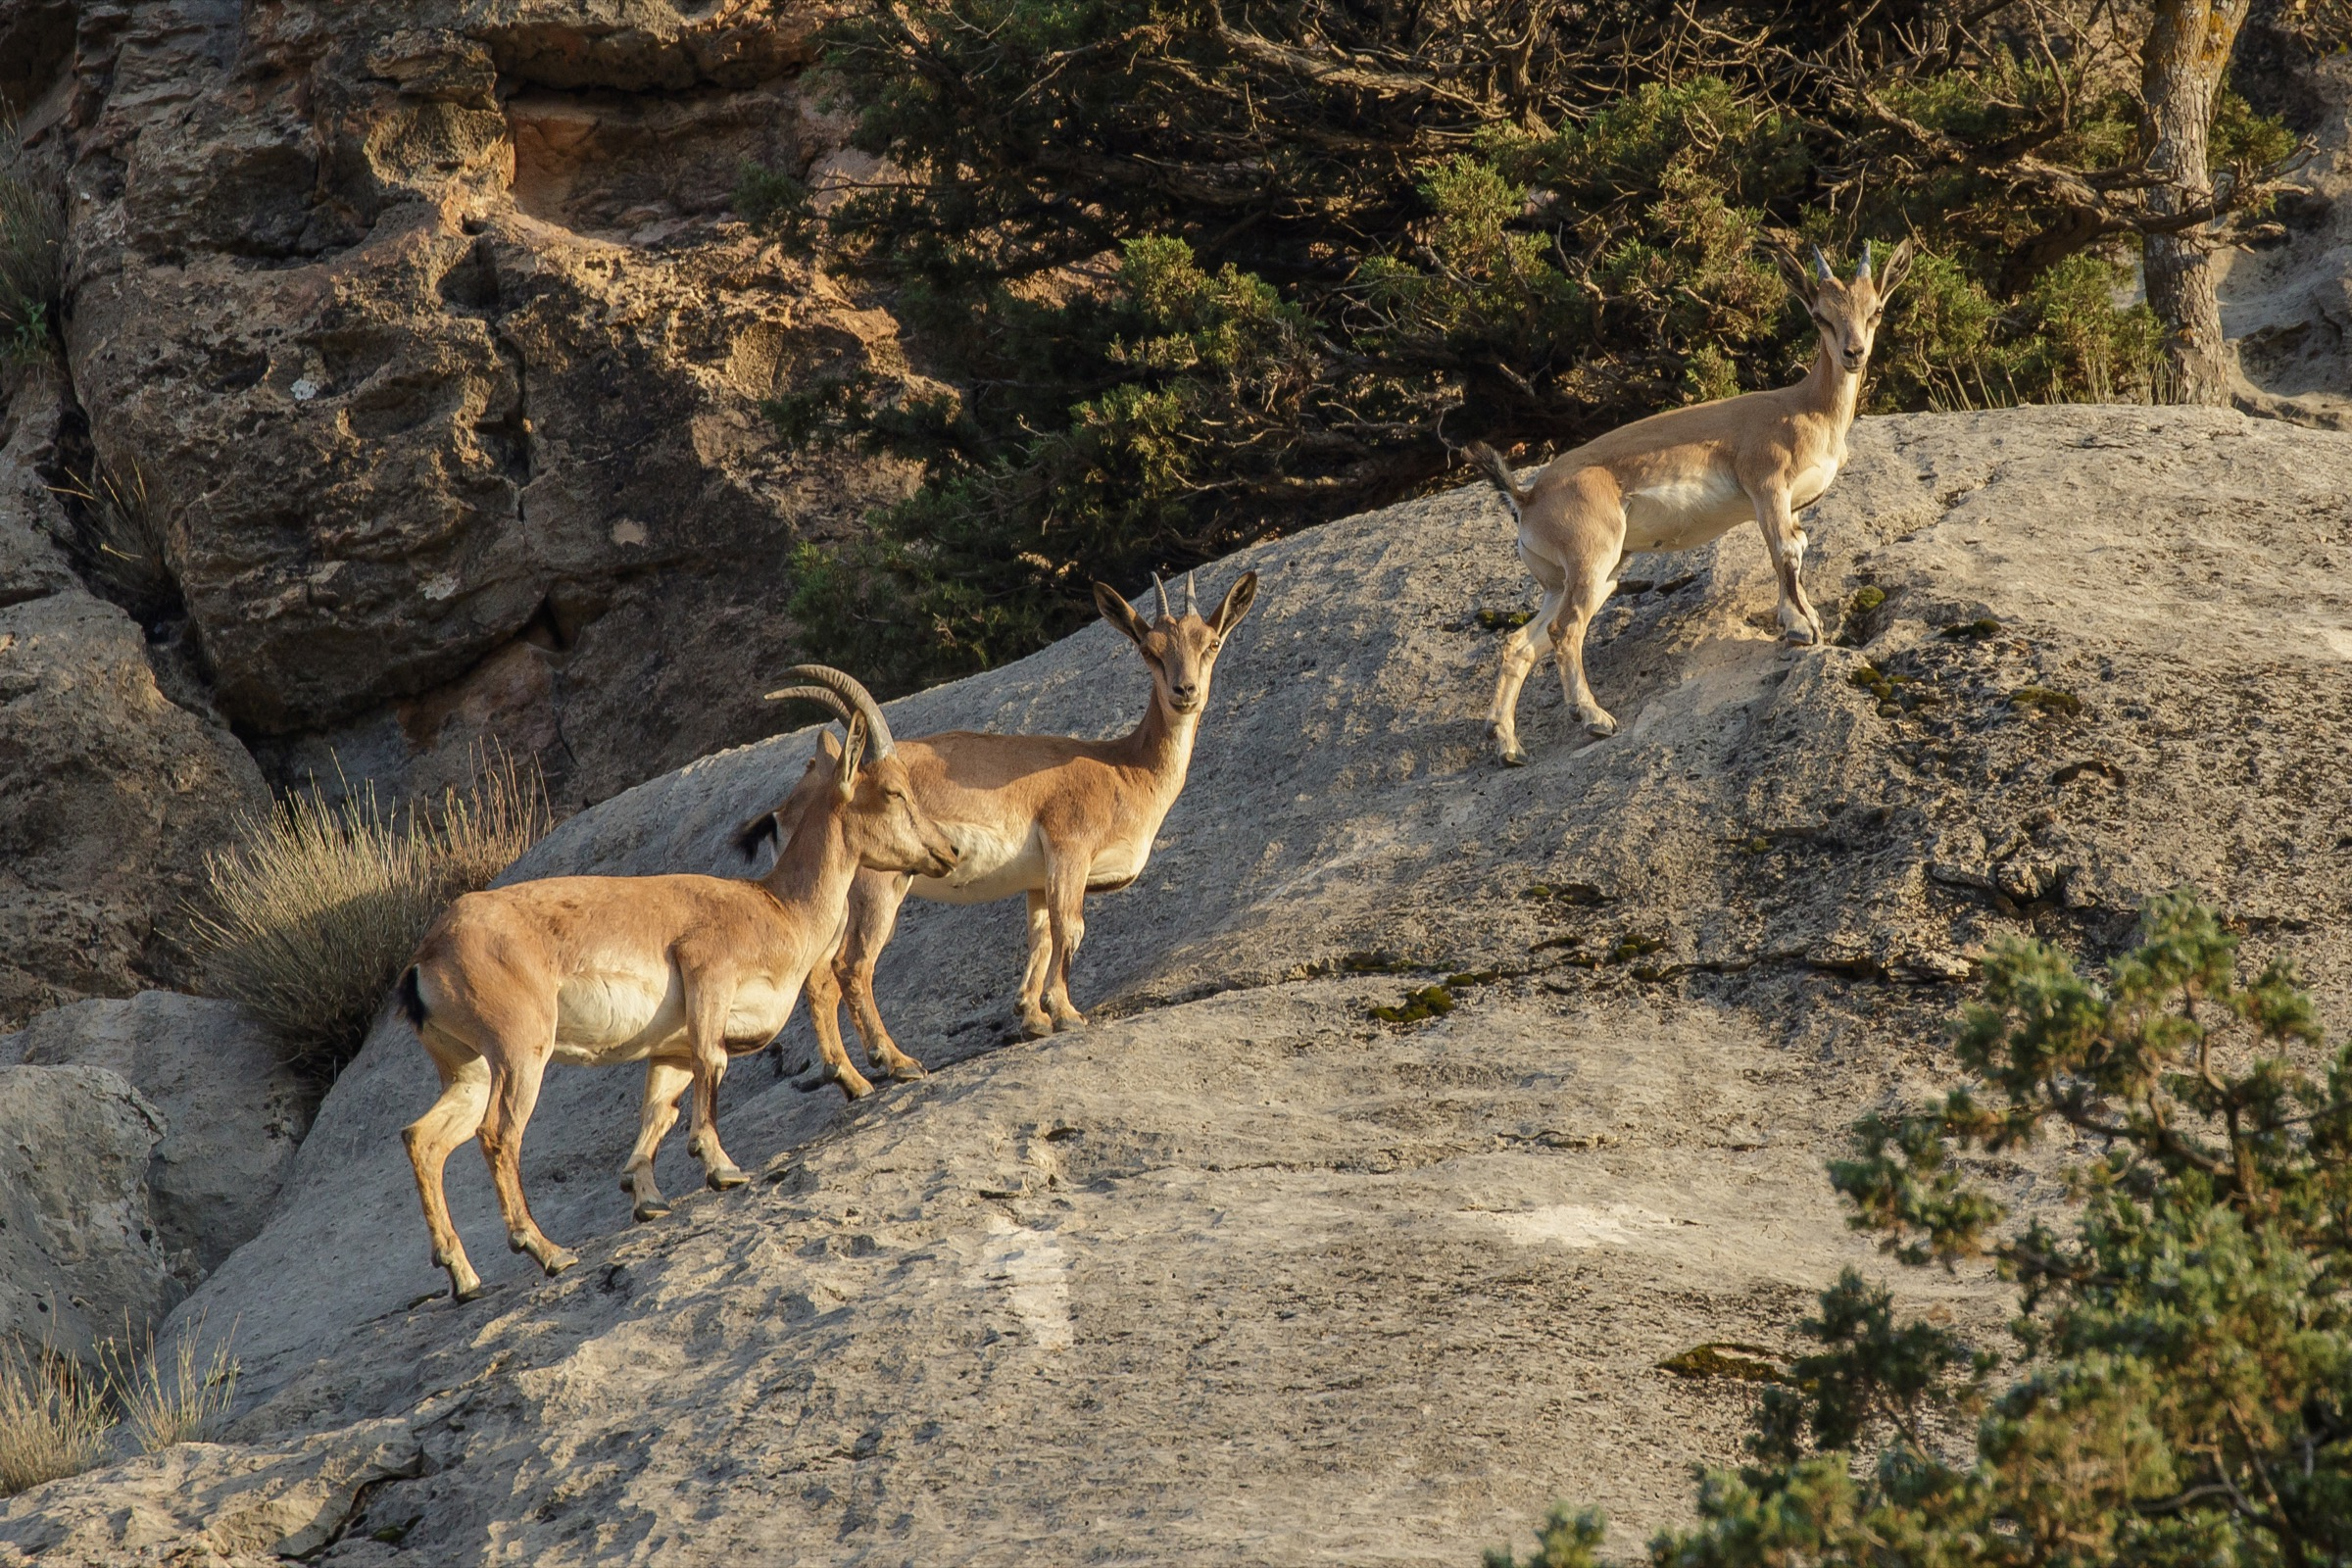 A female wild goat (Capra aegagrus) and her two offspring climb a steep, rocky slope in Iran's Golestan National Park. Photograph by Behzad Farahanchi